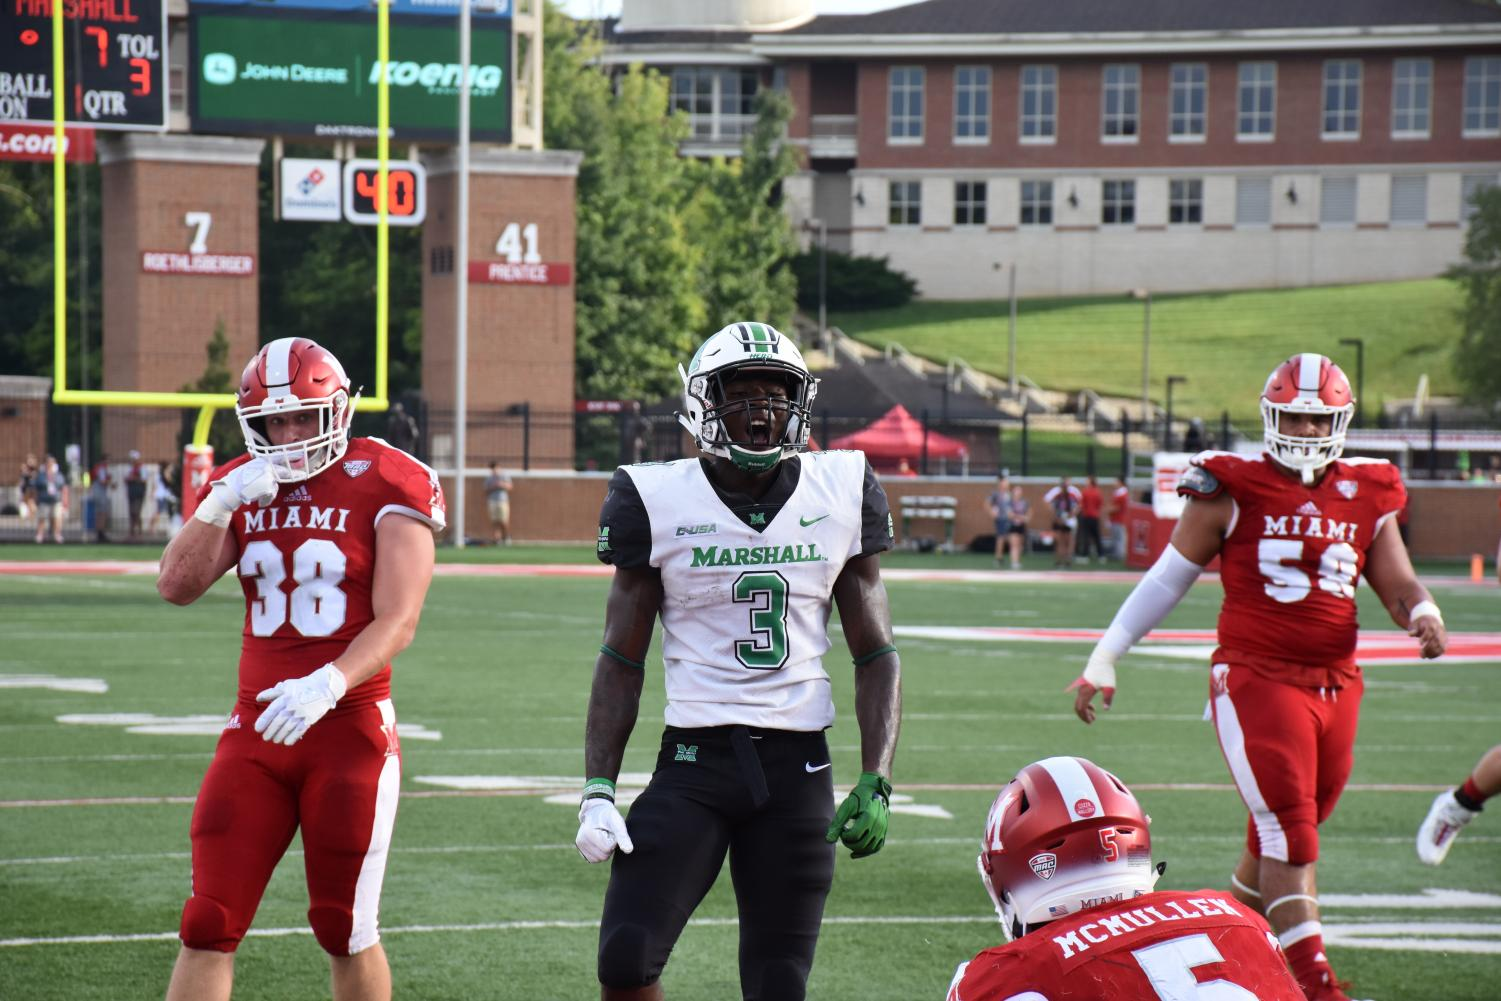 Redshirt sophomore running back Tyler King shows emotion in the first quarter of Marshall's 35-28 win over the Miami (Ohio) RedHawks. King accumulates 67 rushing yards, 32 receiving yards and 83 combined returning yards in the game.